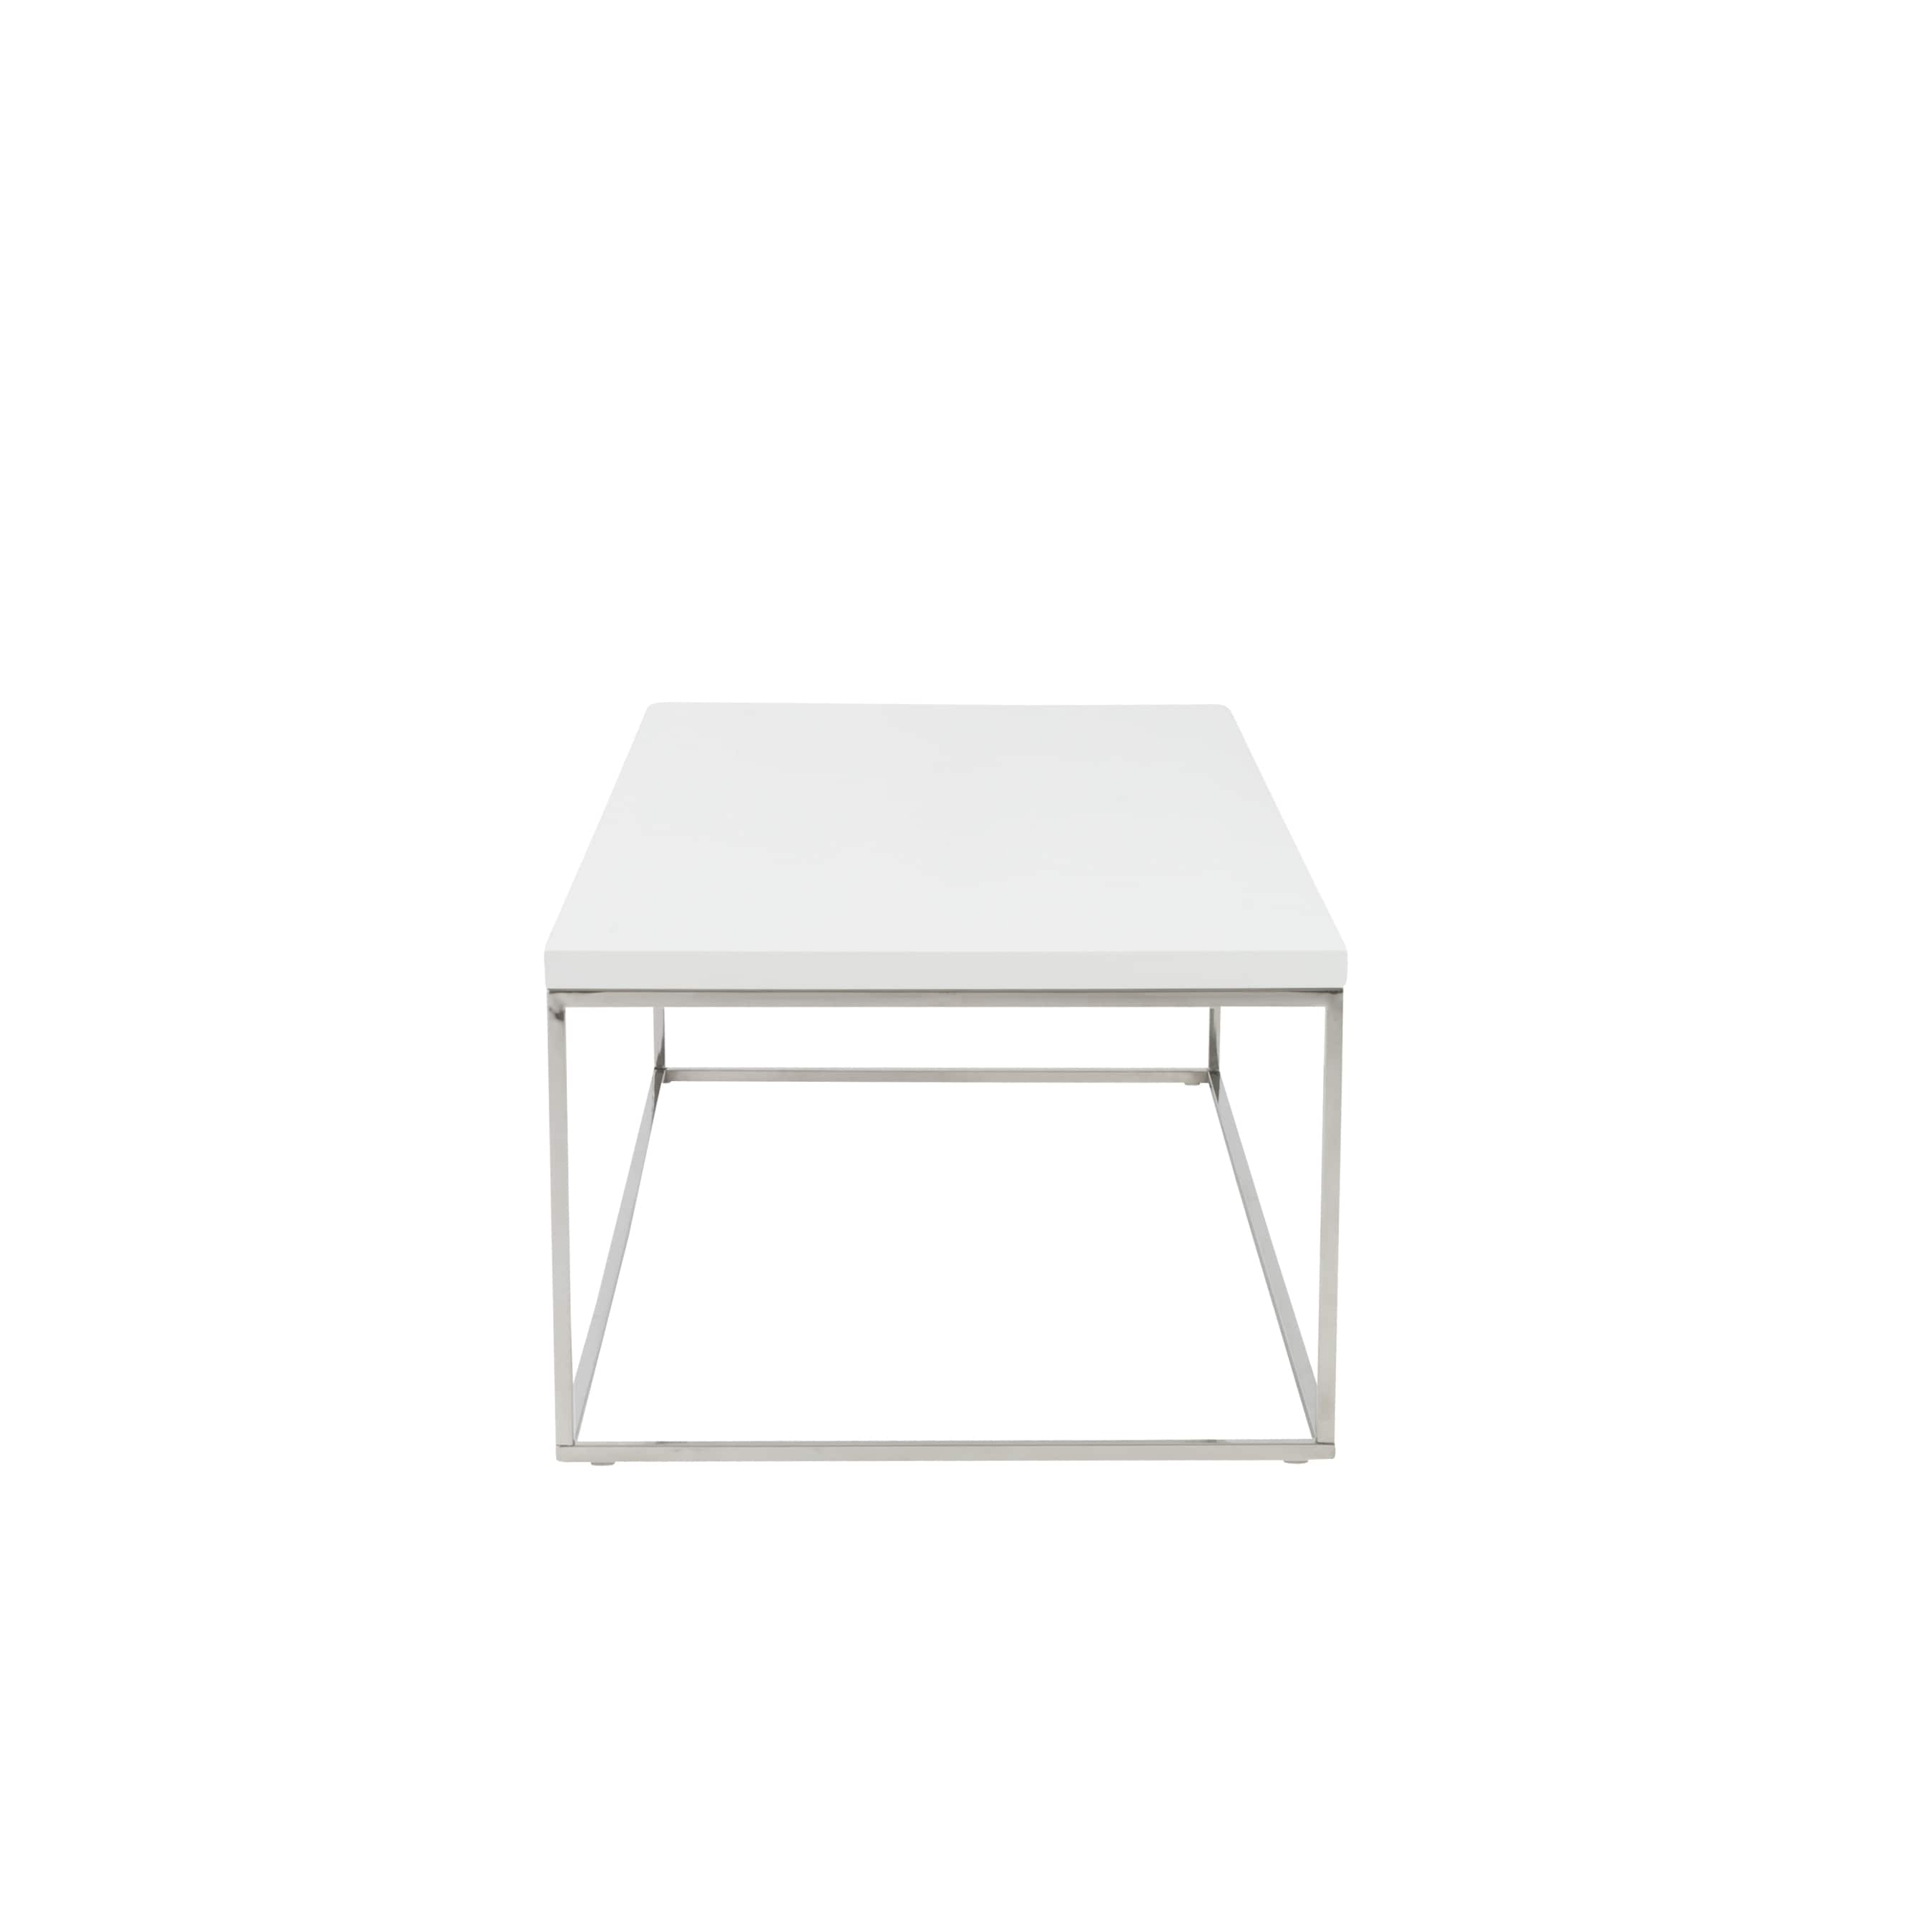 oak belham peacefulness coffee new end tables living blogbeen hampton table white lift hayneedle top bejyopn with